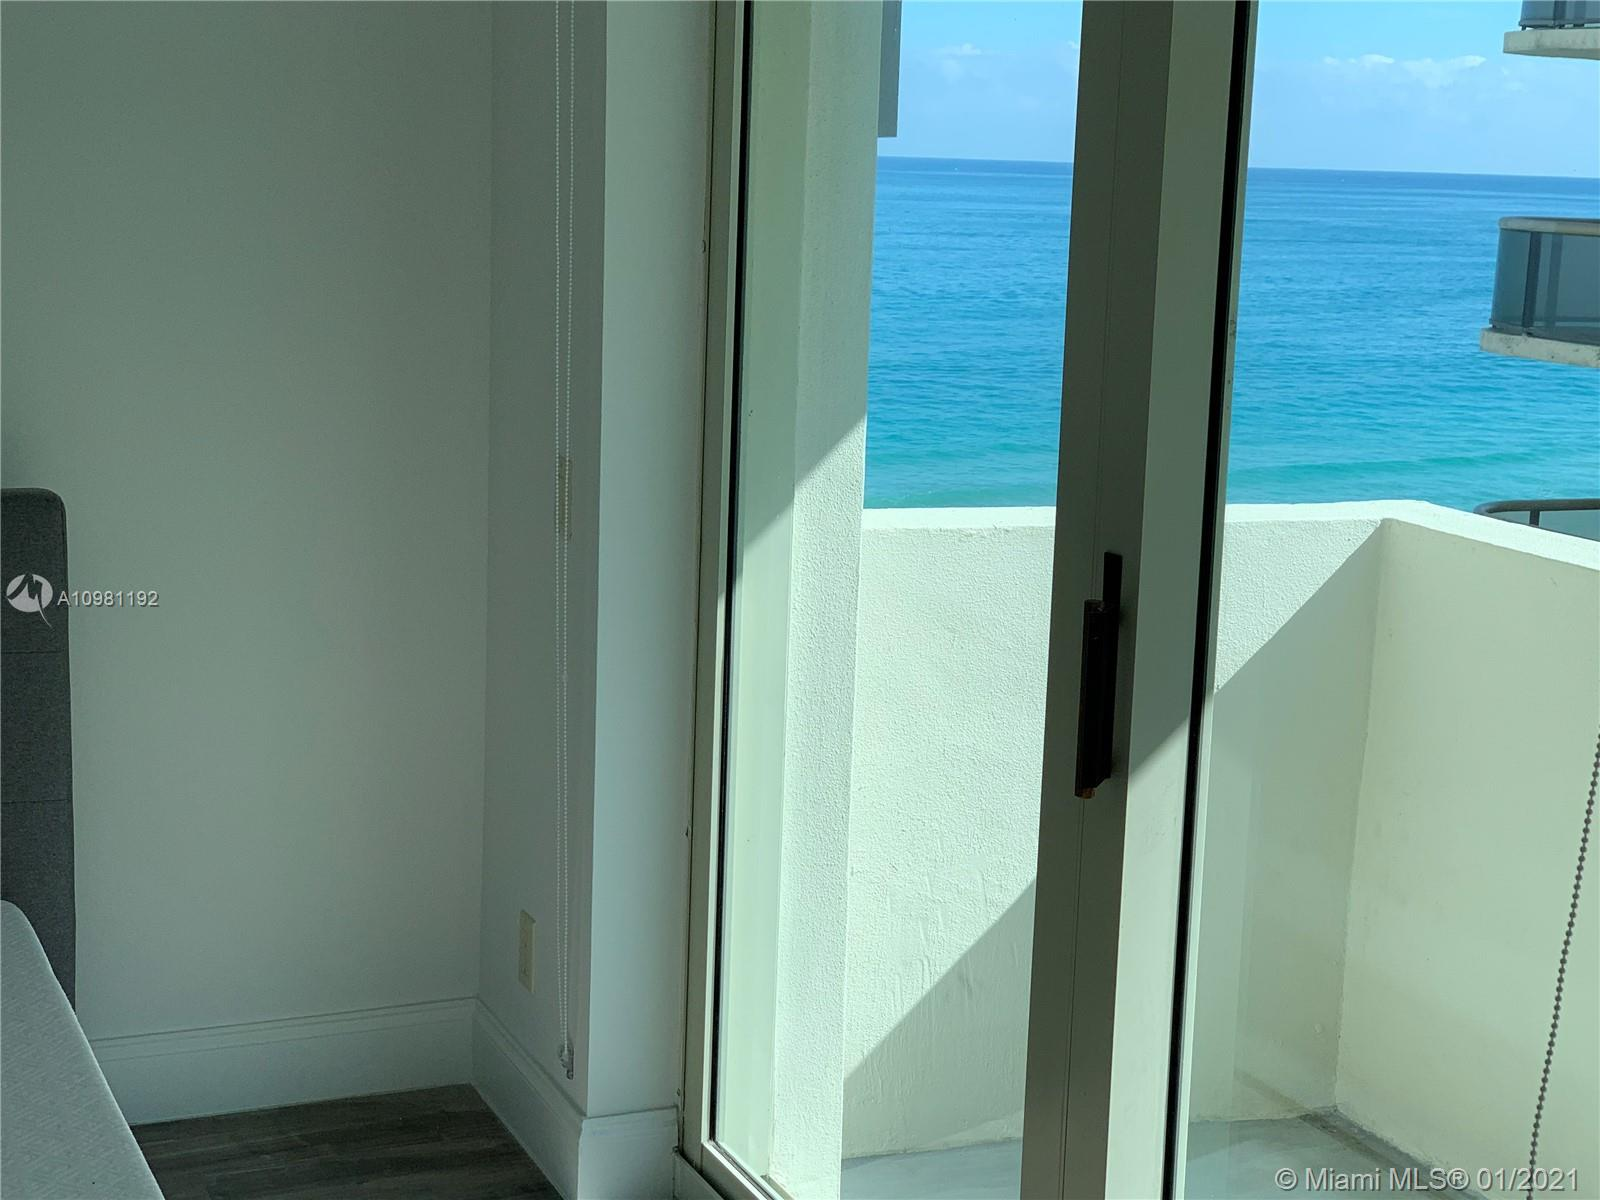 Spiaggia #1004 - 9499 Collins Ave #1004, Surfside, FL 33154